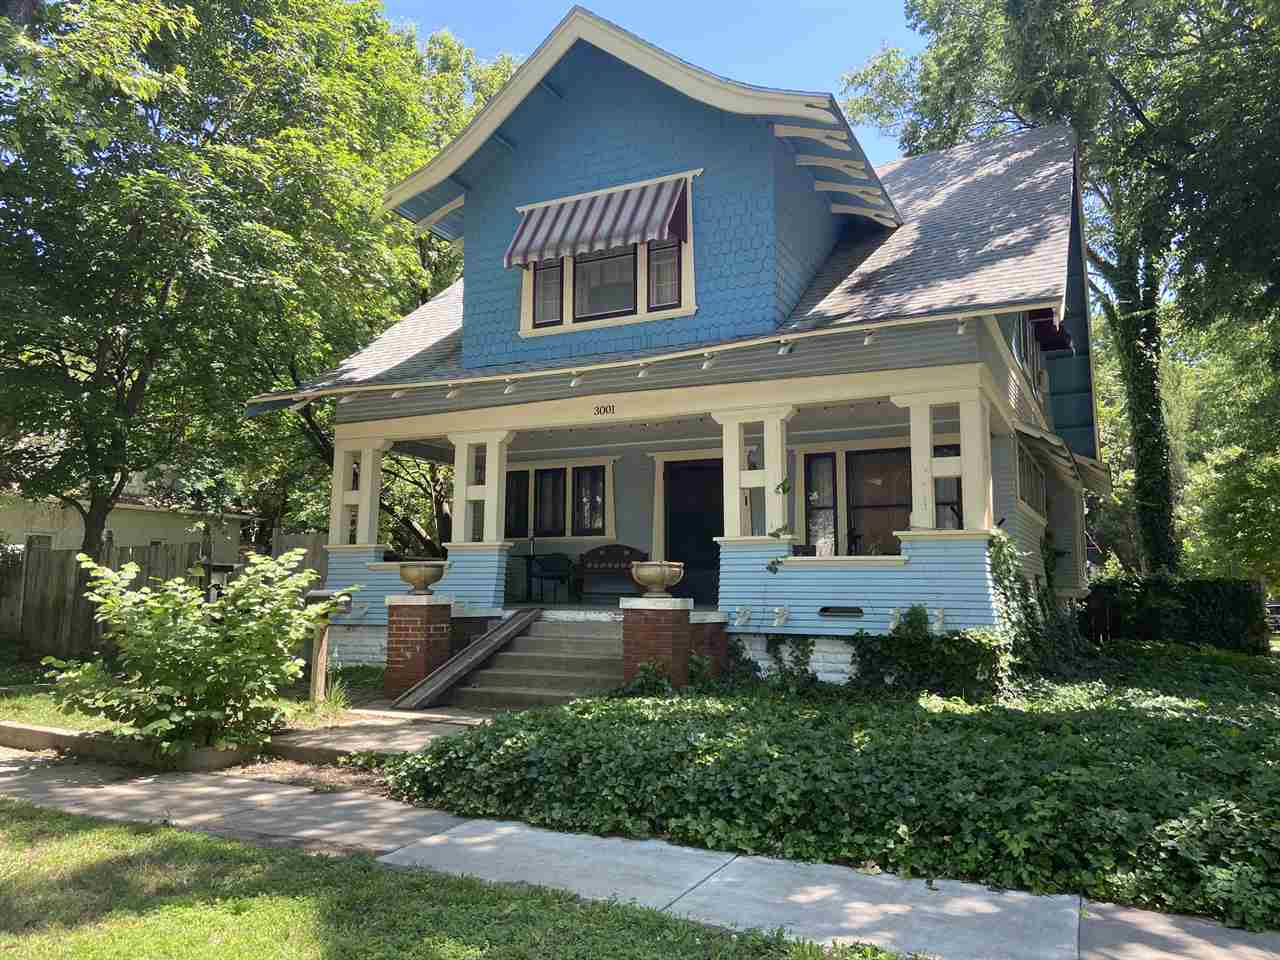 Original woodwork, beamed ceilings, original wood floors. Great front porch, patio, and deck. Large